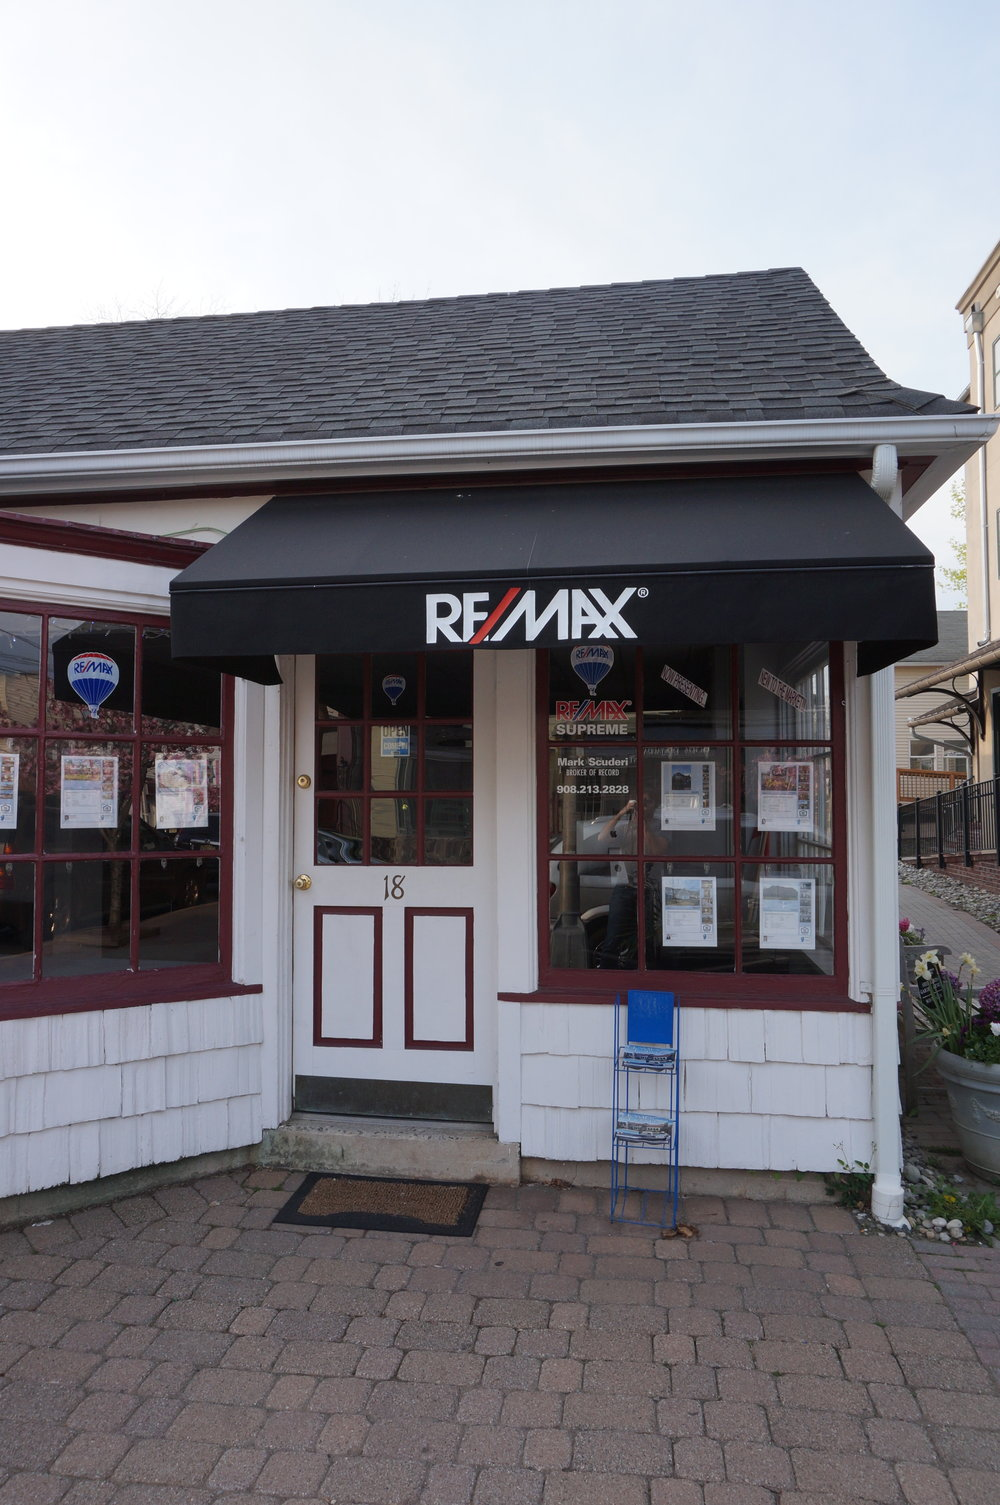 remax_SUPREME.jpg